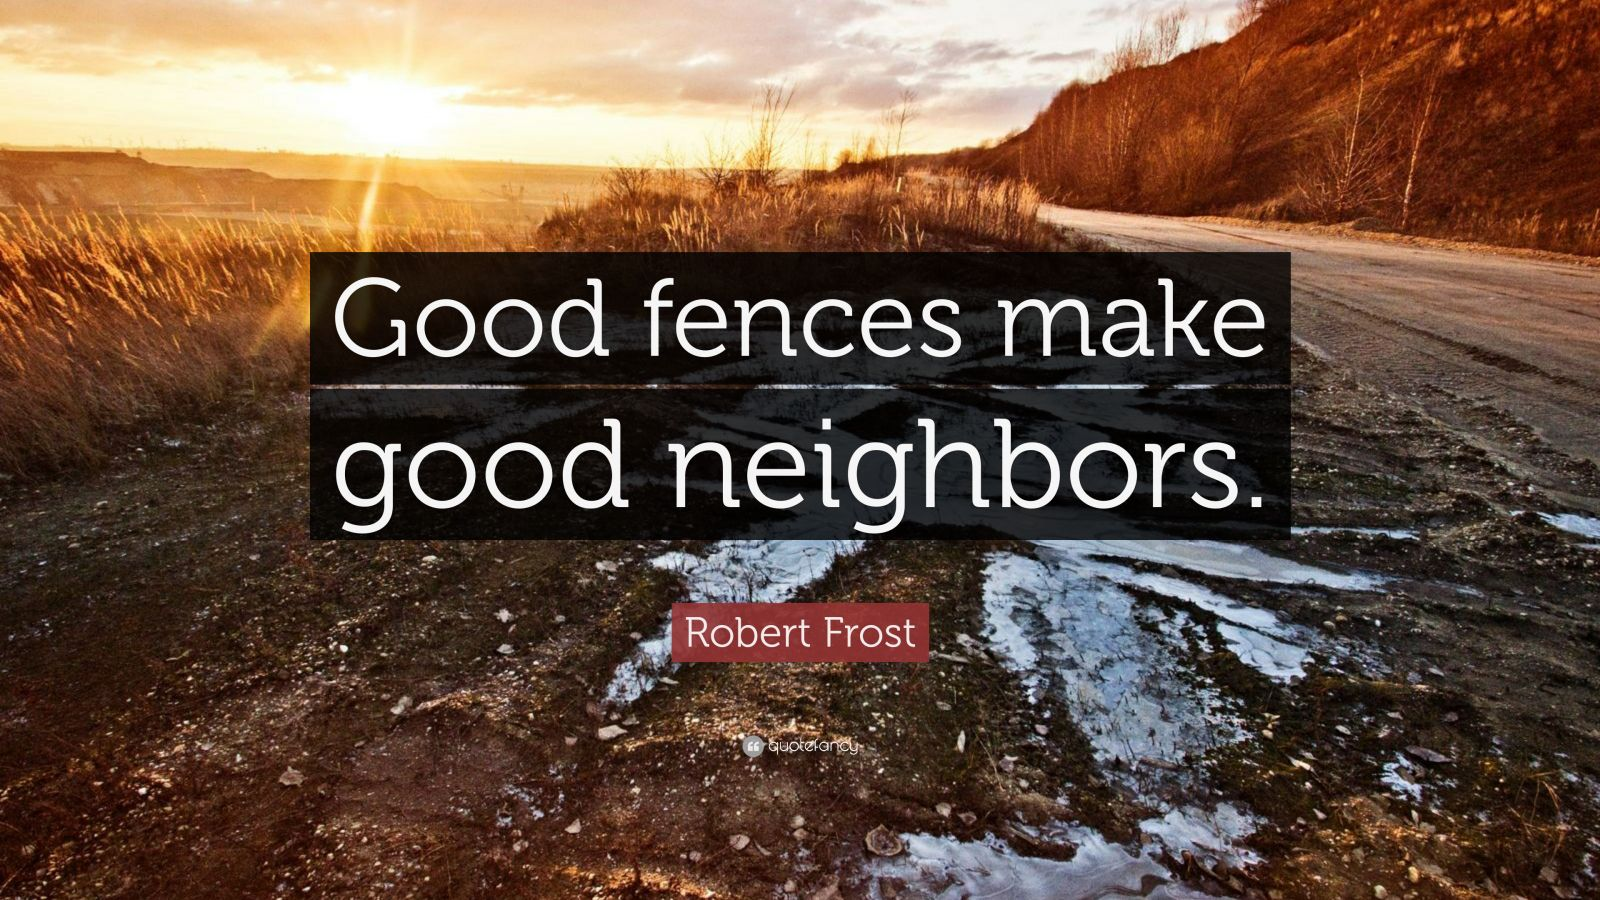 Persistence Quotes Wallpapers Robert Frost Quote Good Fences Make Good Neighbors 14